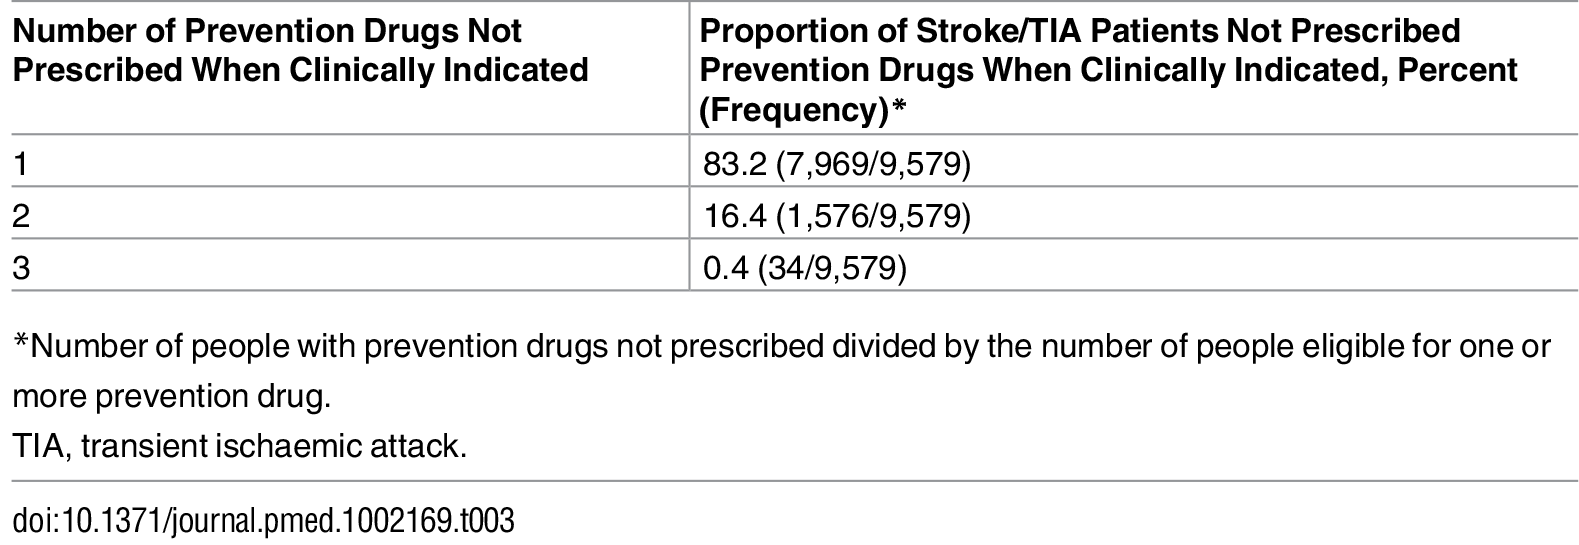 Proportion of stroke and transient ischaemic attack patients under-prescribed one, two, or three prevention drugs (lipid-lowering, anticoagulant, or antihypertensive drugs).